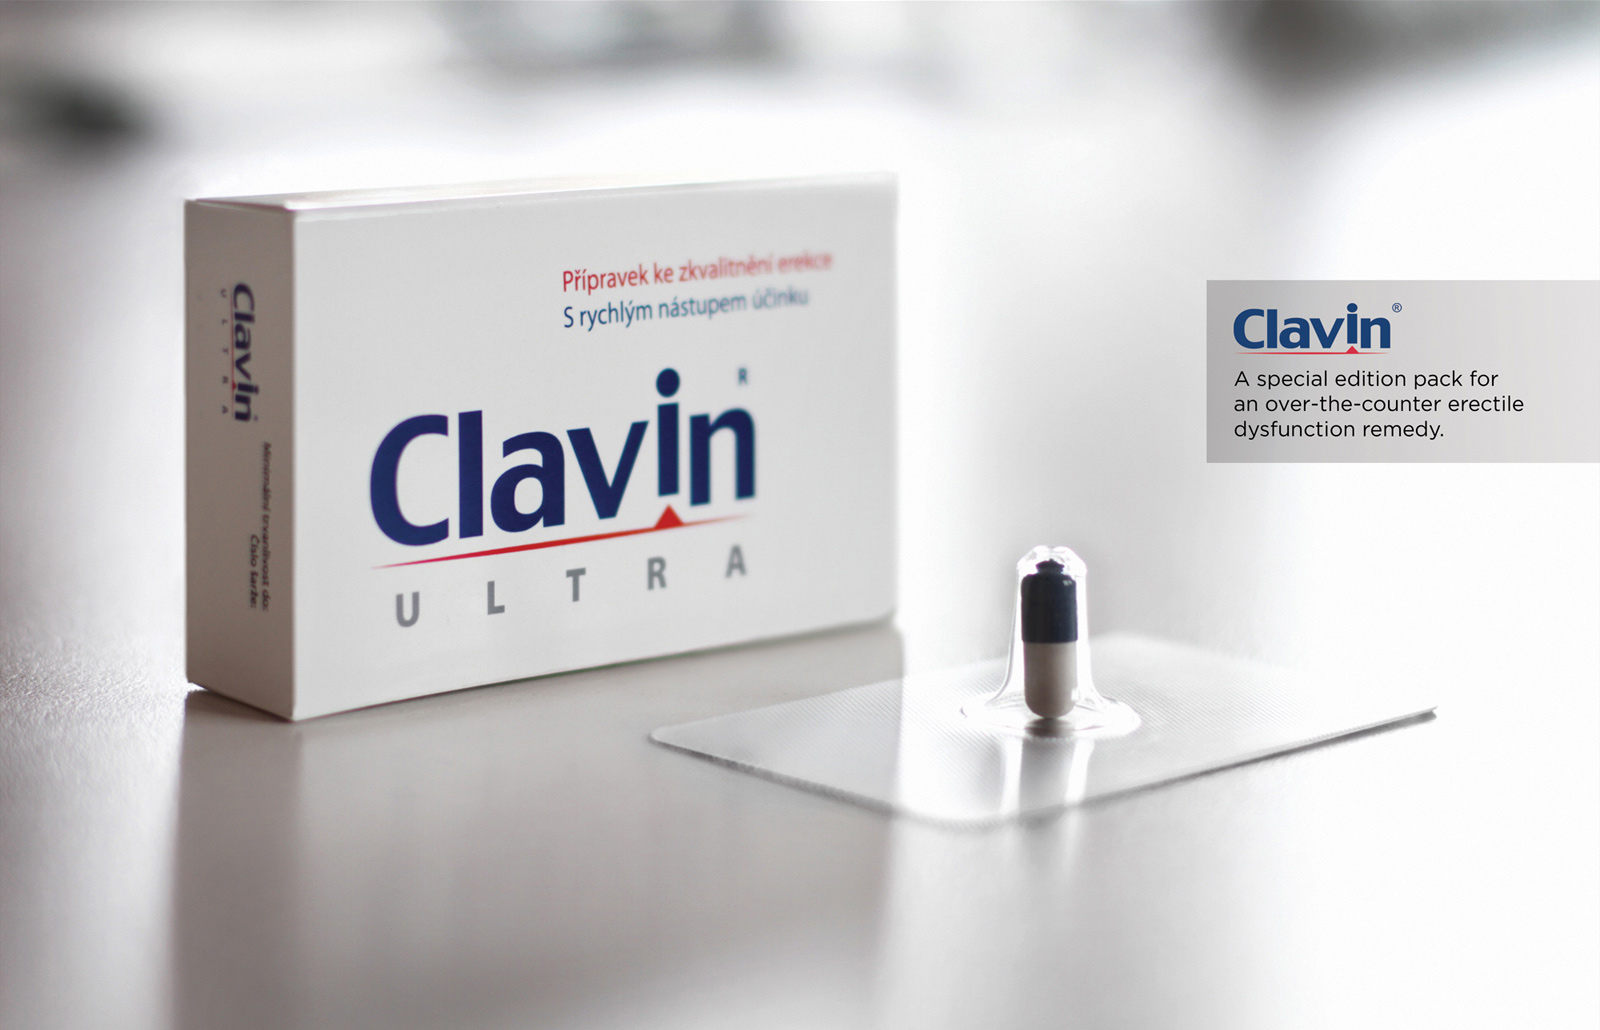 Clavin_Erection_Blister_Packaging_ibelieveinadv.jpg